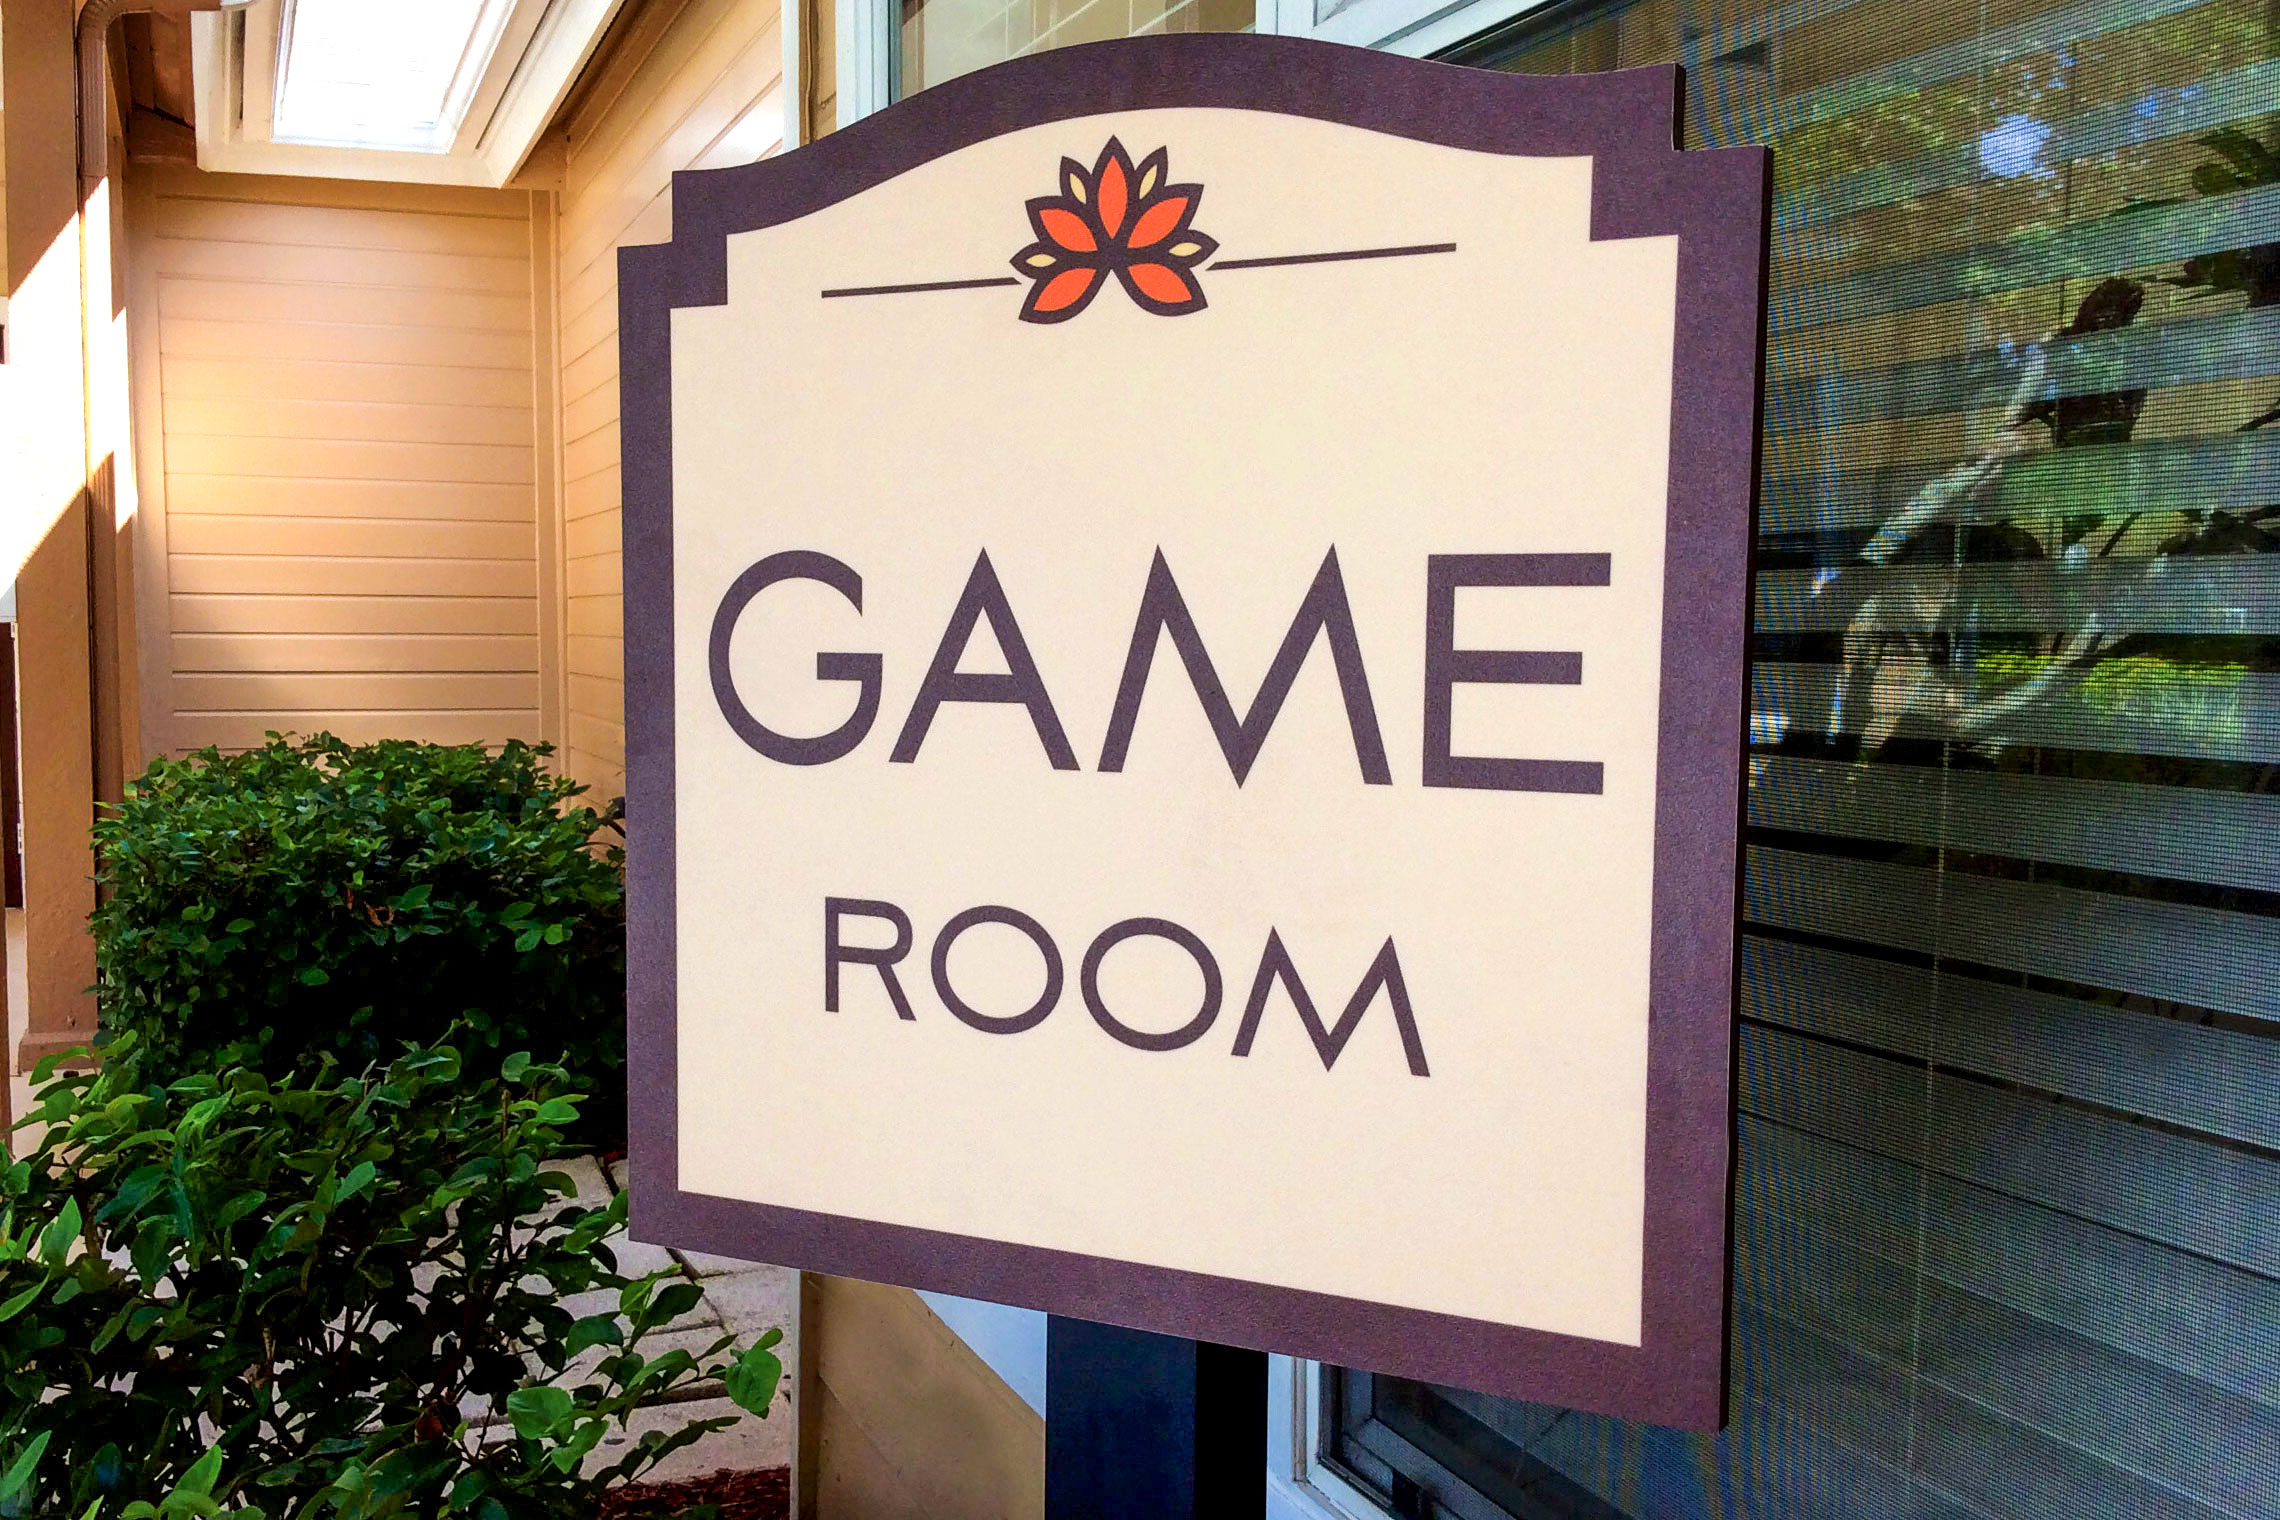 Retreat at Crosstown Apartment Homes Game Room ID on Post